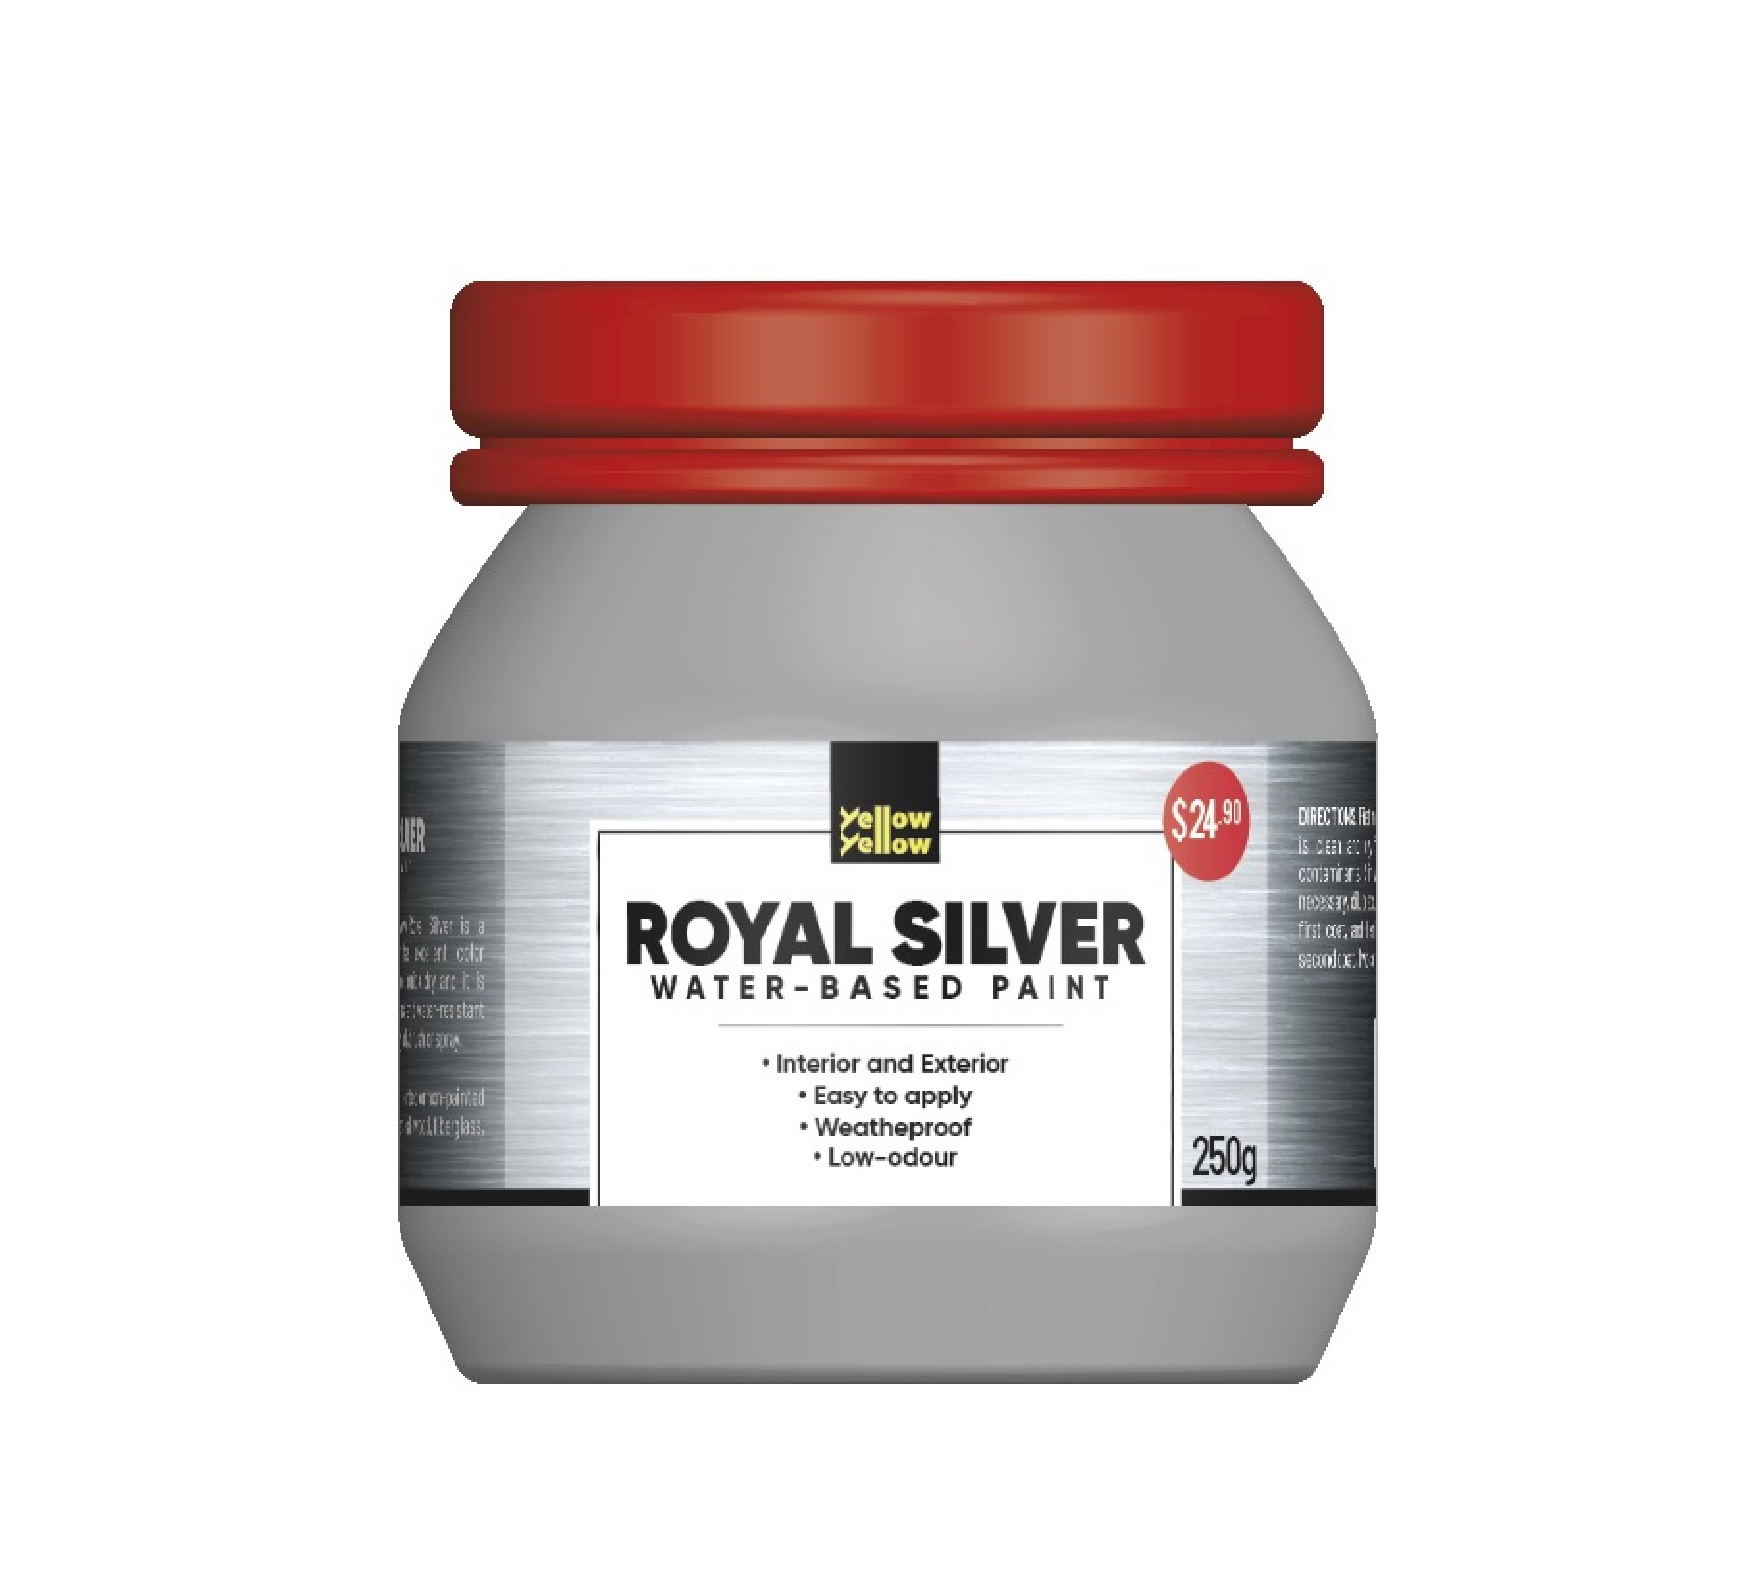 Yellowyellow Royal Silver Water-based Low Odour Paint 250g